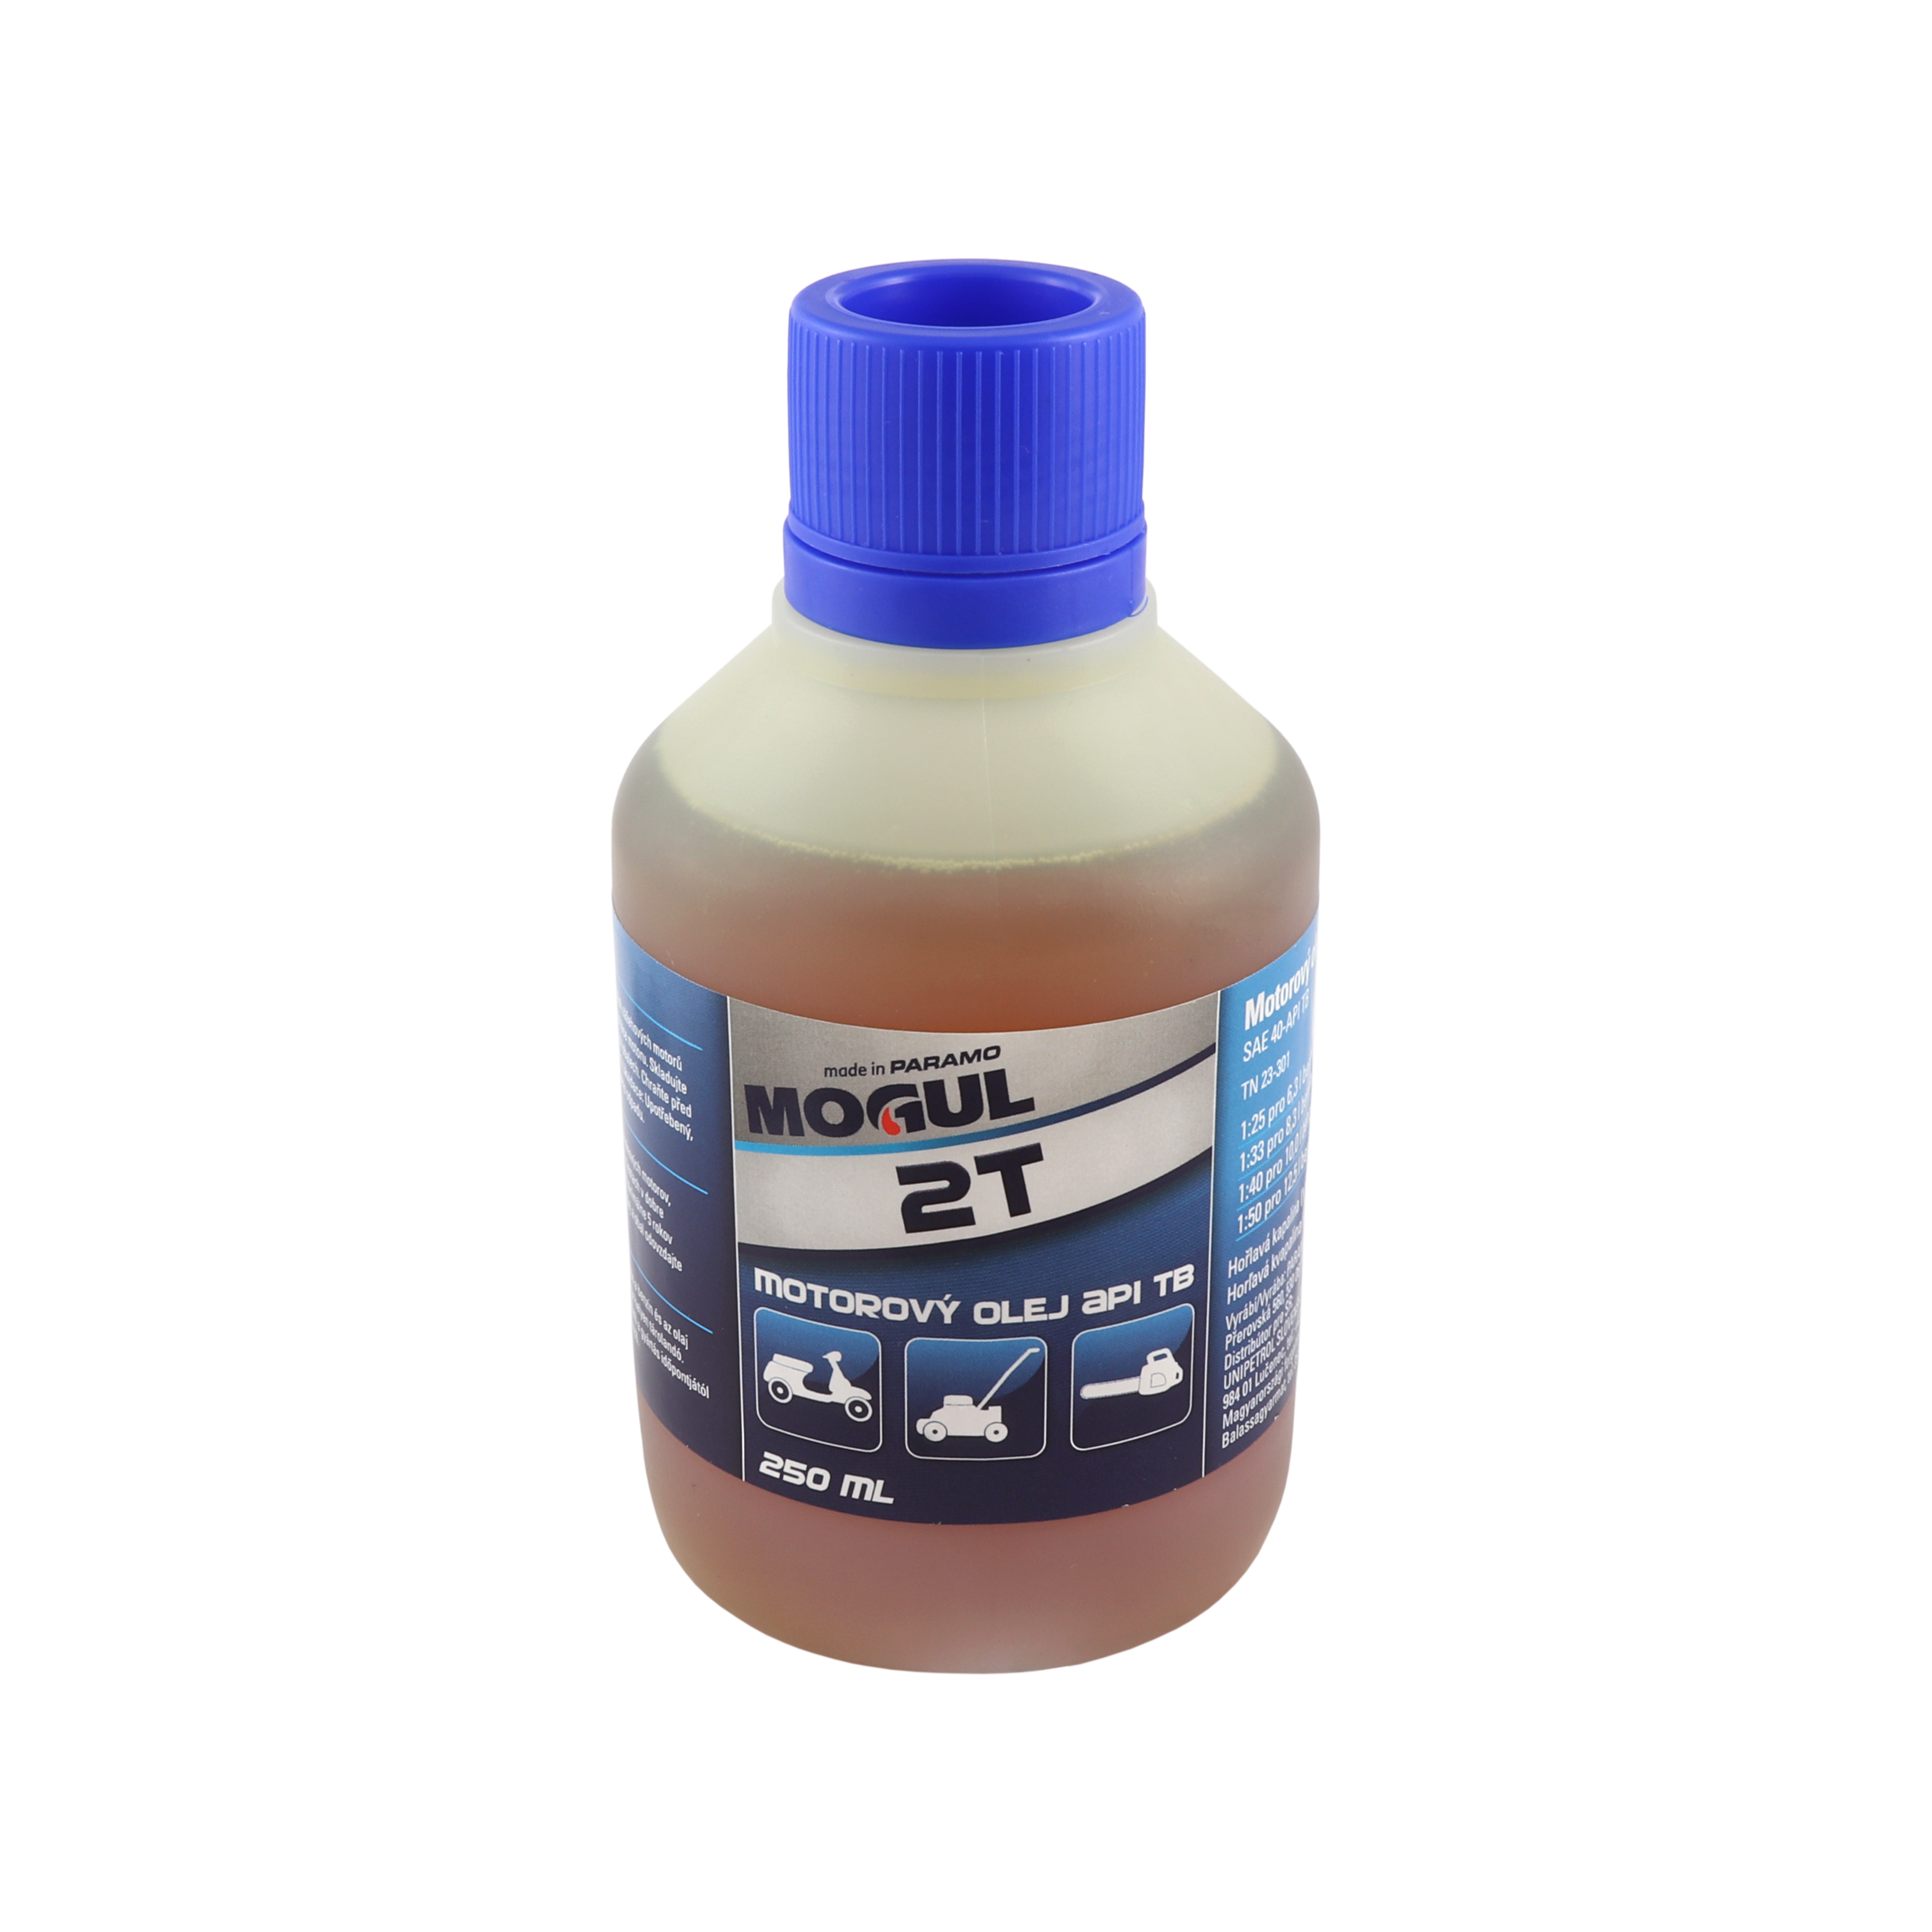 Engine oil - MOGUL 2T (100 ml)